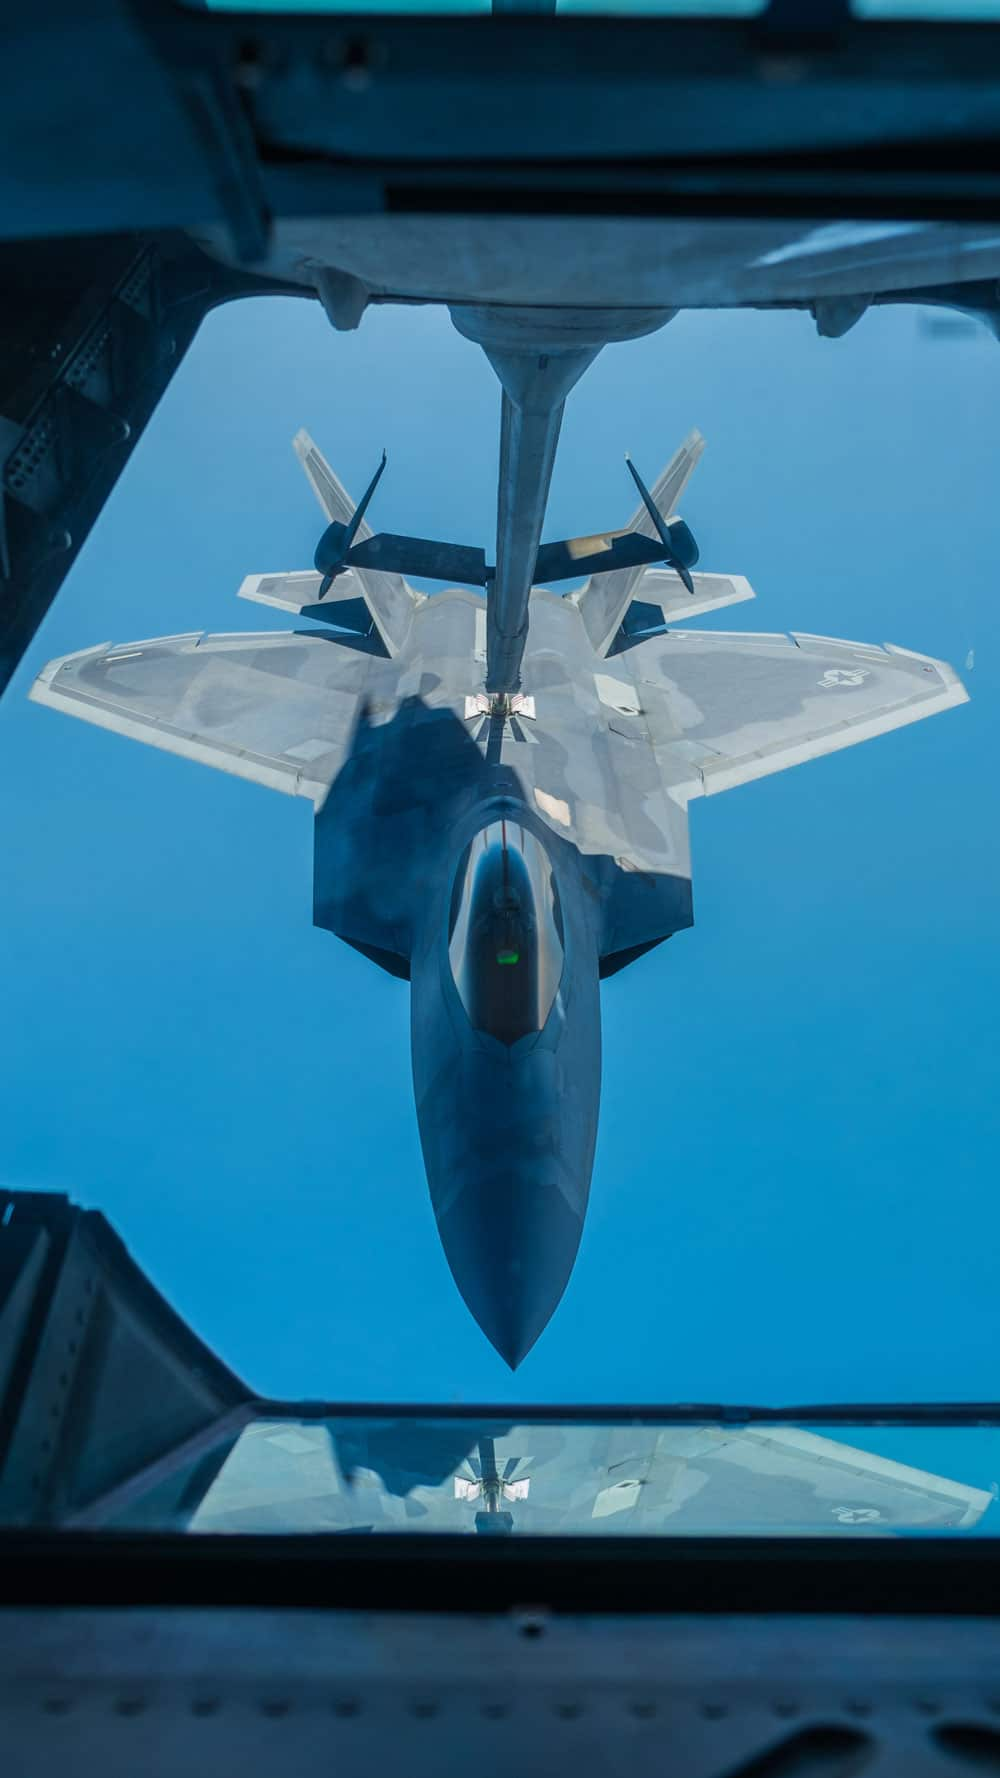 USAF 27th Expeditionary Fighter Squadron pilot flies an F-22 Raptor up to a 908th Expeditionary Air Refueling Squadron KC-10 Extender in the skies over southwest Asia. As part of the Air Force Global Strike Task Force, members of the 27 EFS take the fight directly to ISIS.